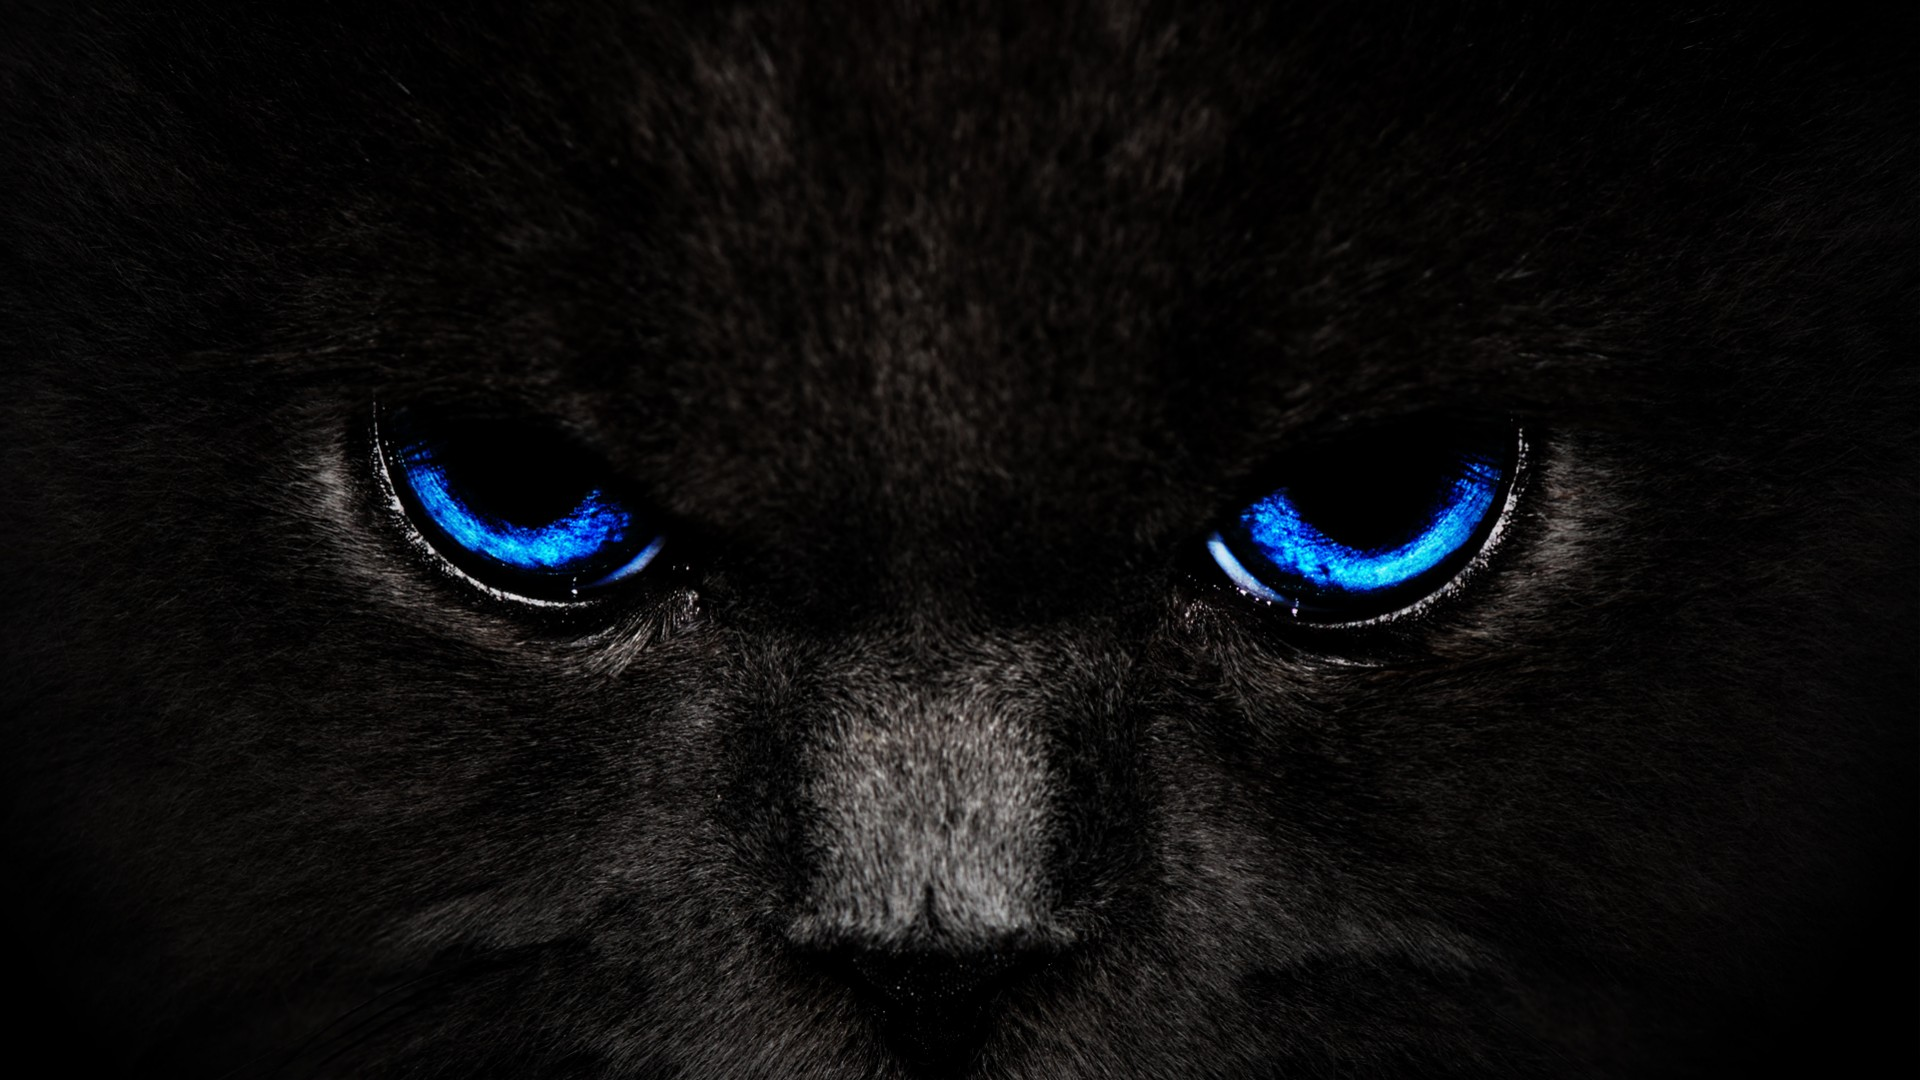 Download Cat Blue Eyes Wallpaper 1920x1080 Full HD Wallpapers 1920x1080